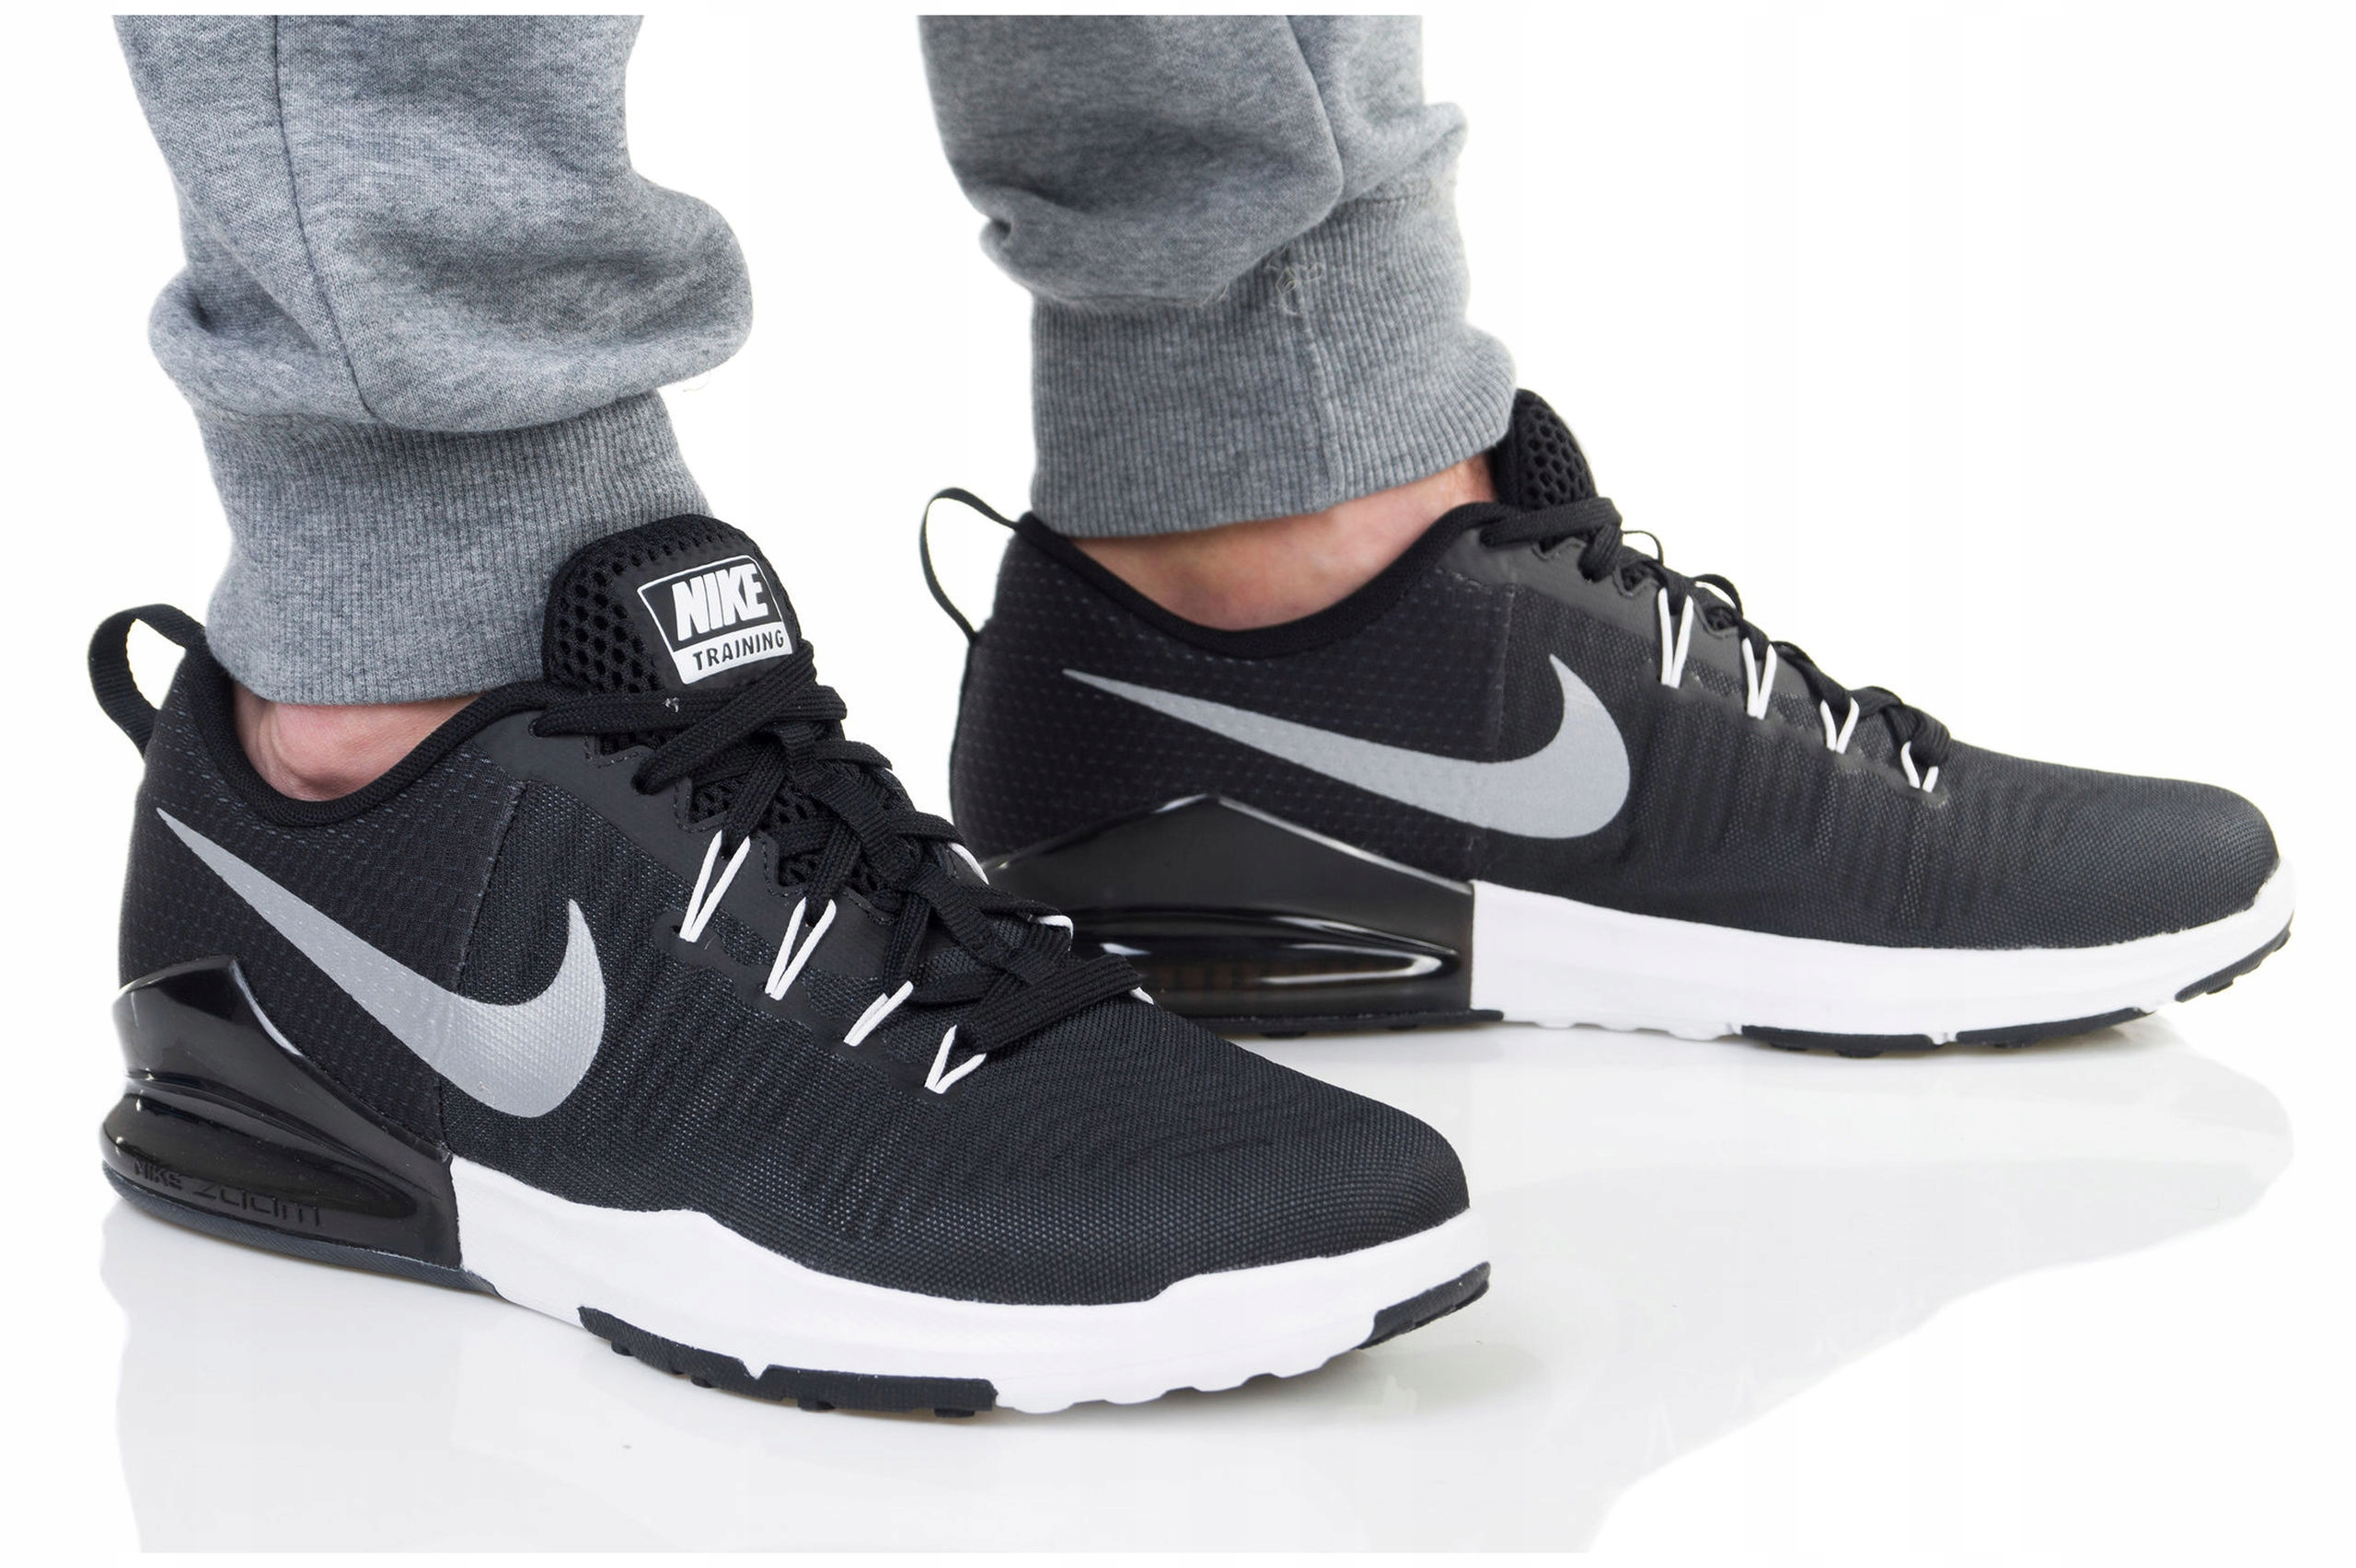 BUTY NIKE ZOOM TRAIN ACTION 852438-003 R. 46 - 7515254915 ... 8927969a3a90